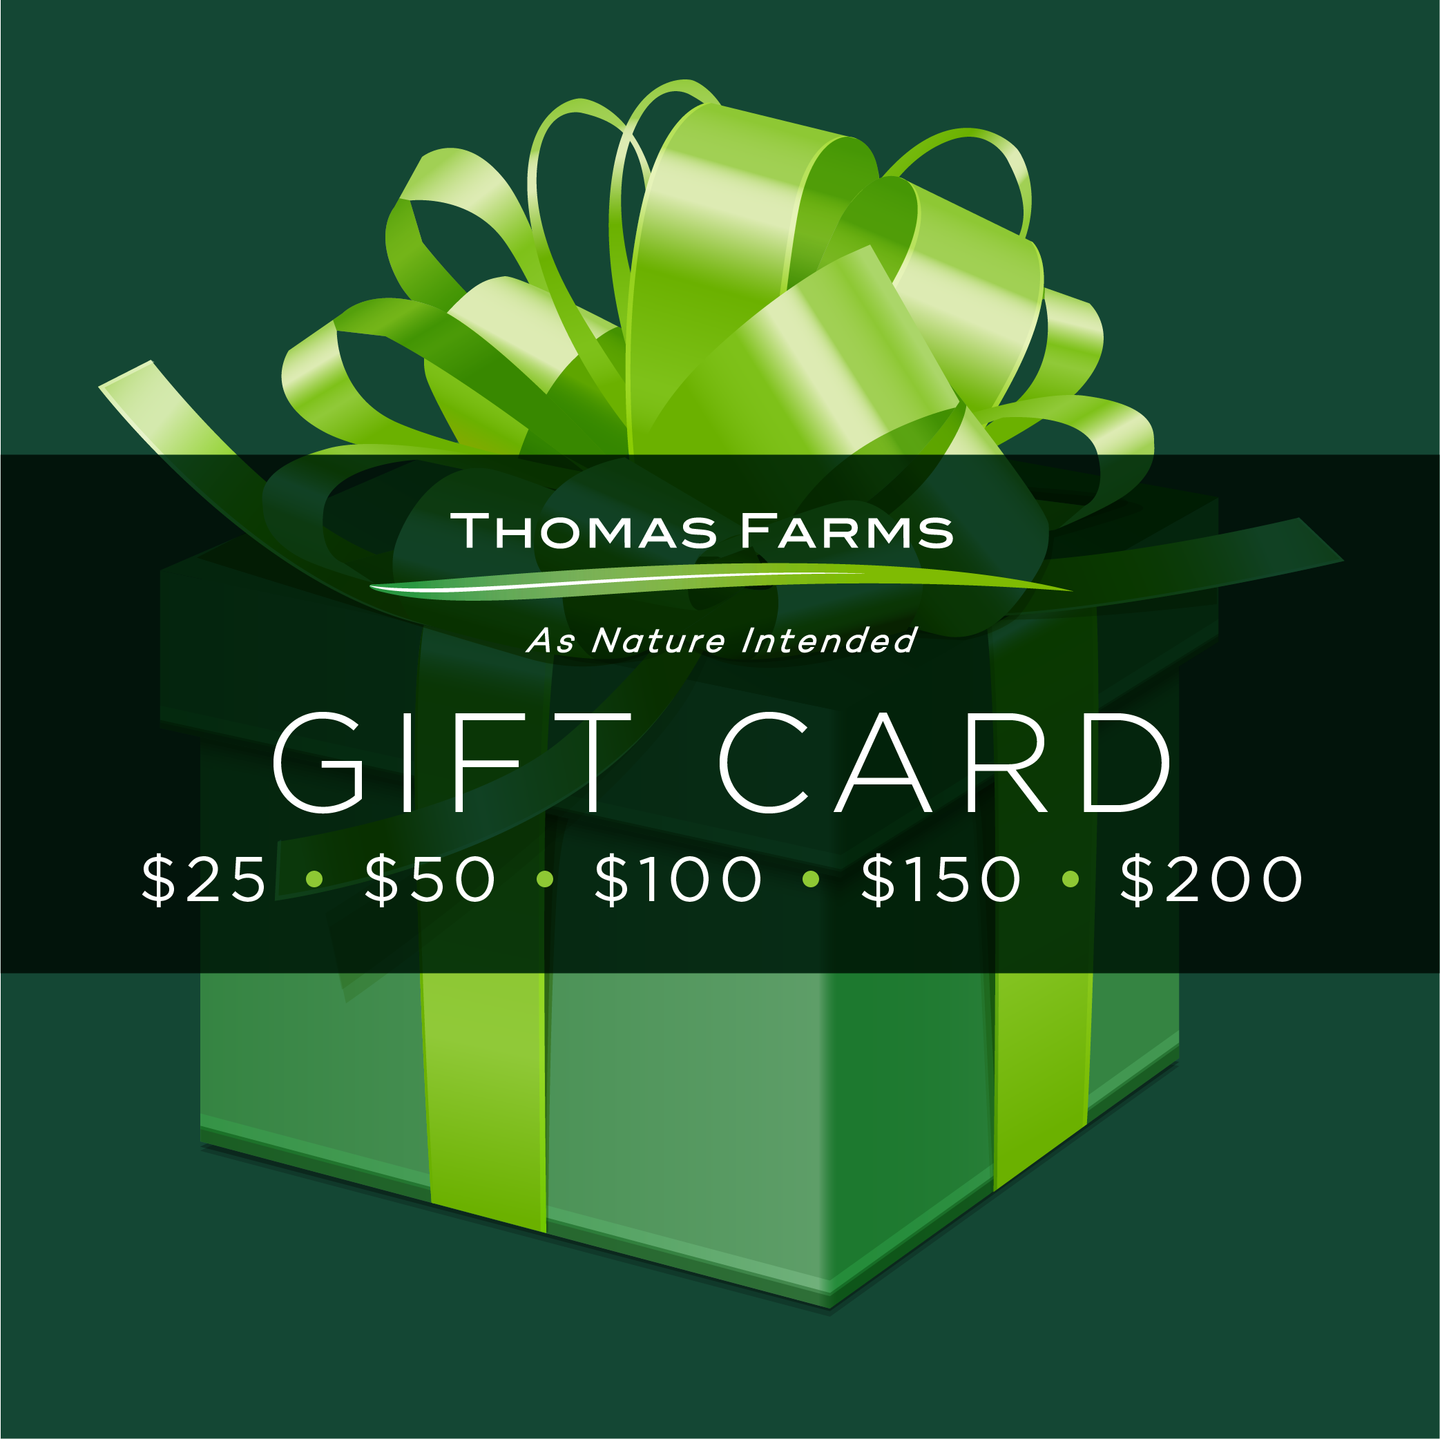 Thomas Farms Gift Card